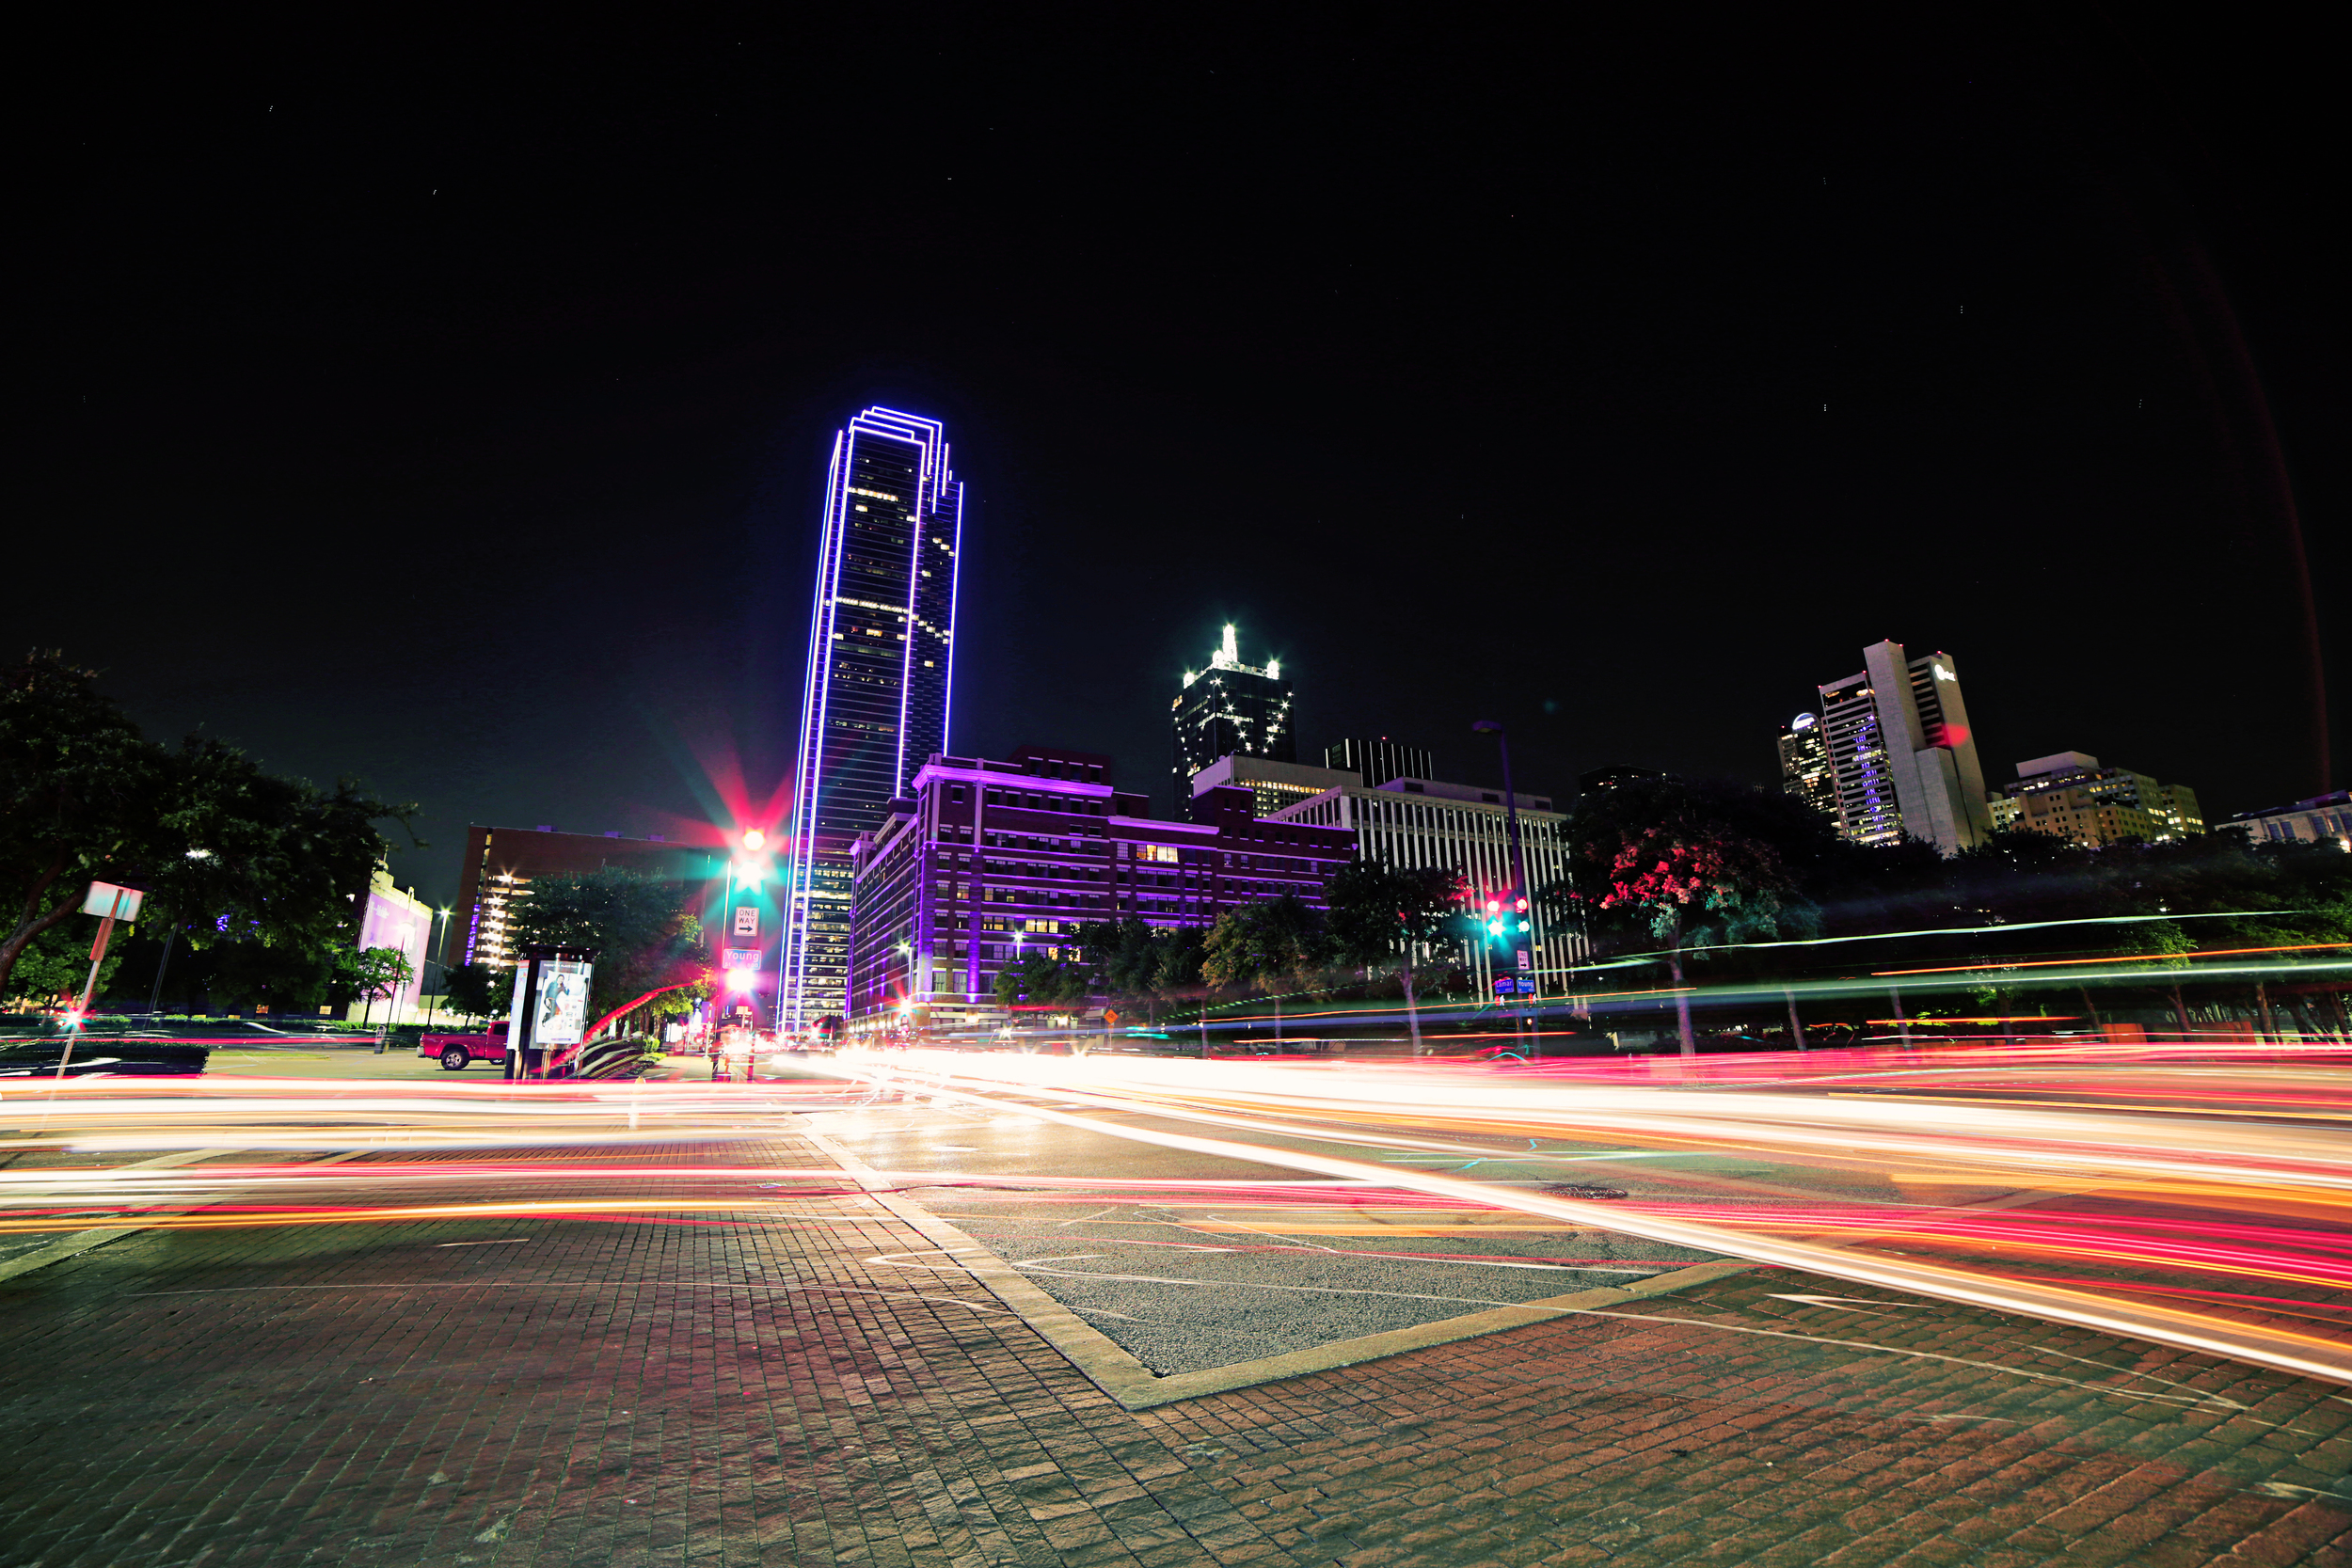 Dallas-Carlights-June-12-edit.jpg